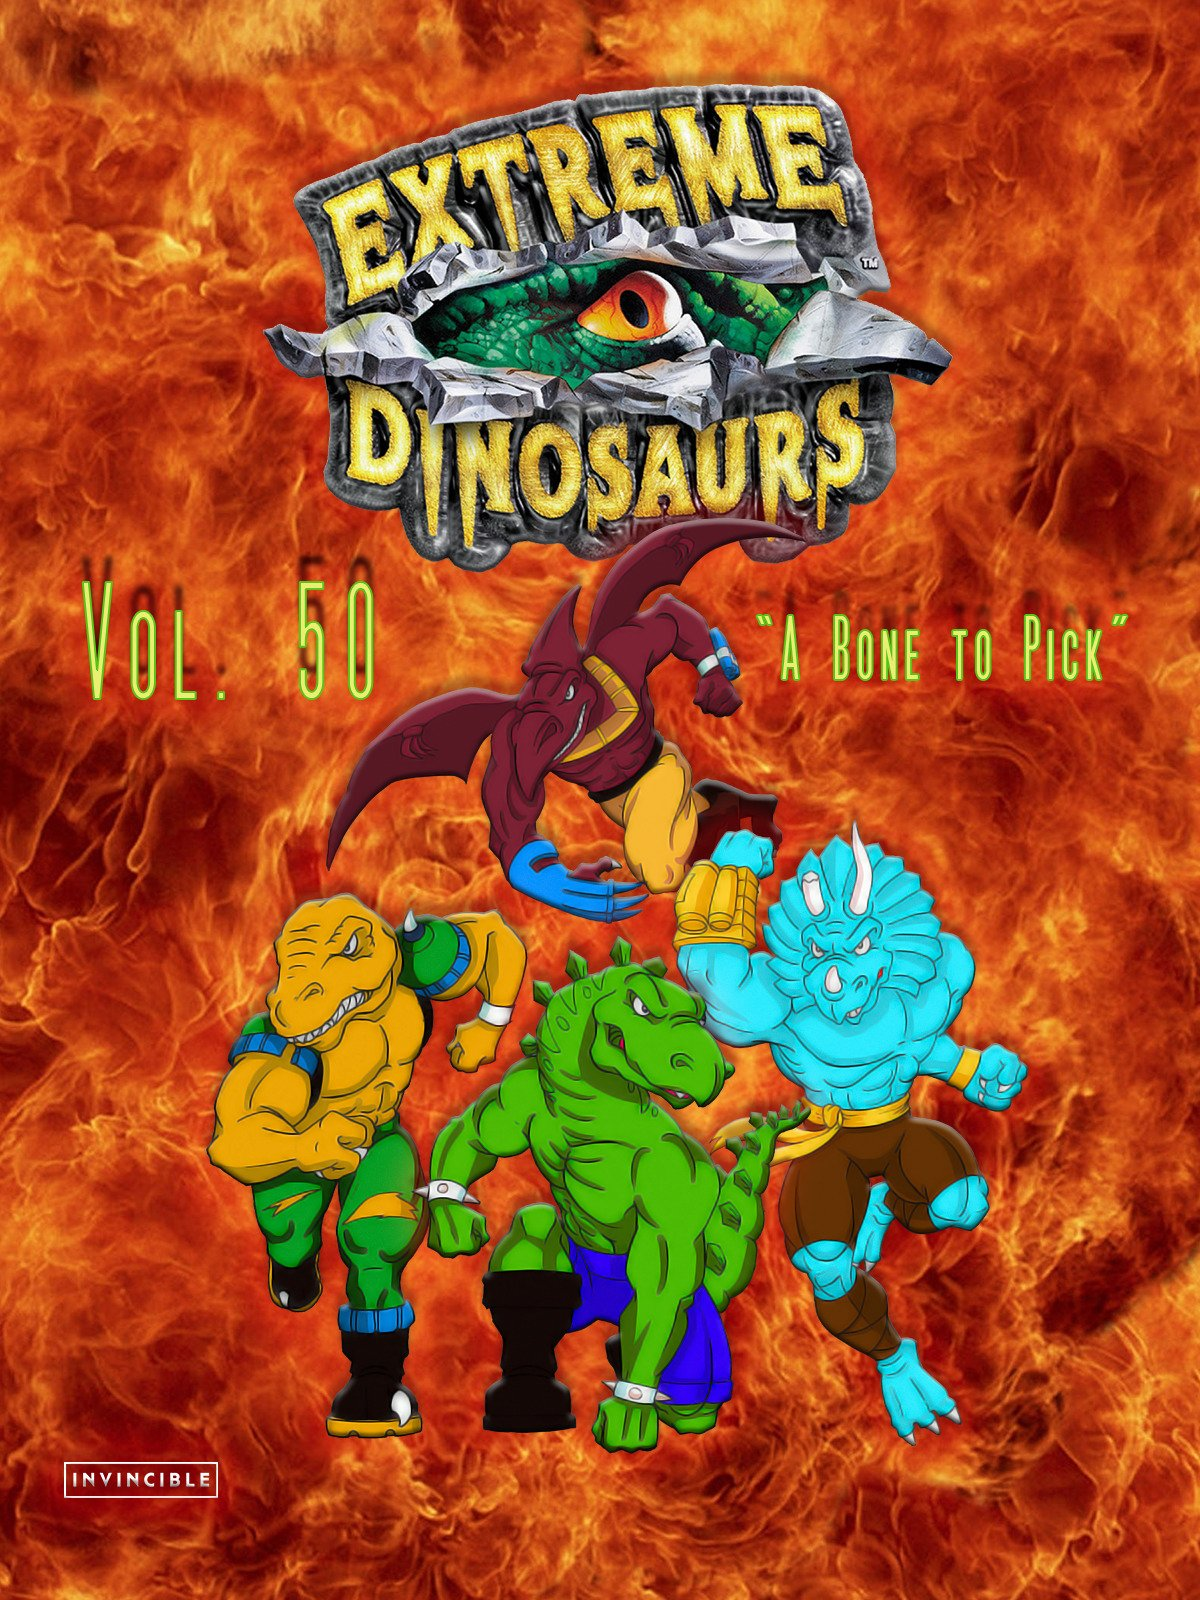 Extreme Dinosaurs Vol. 50A Bone to Pick